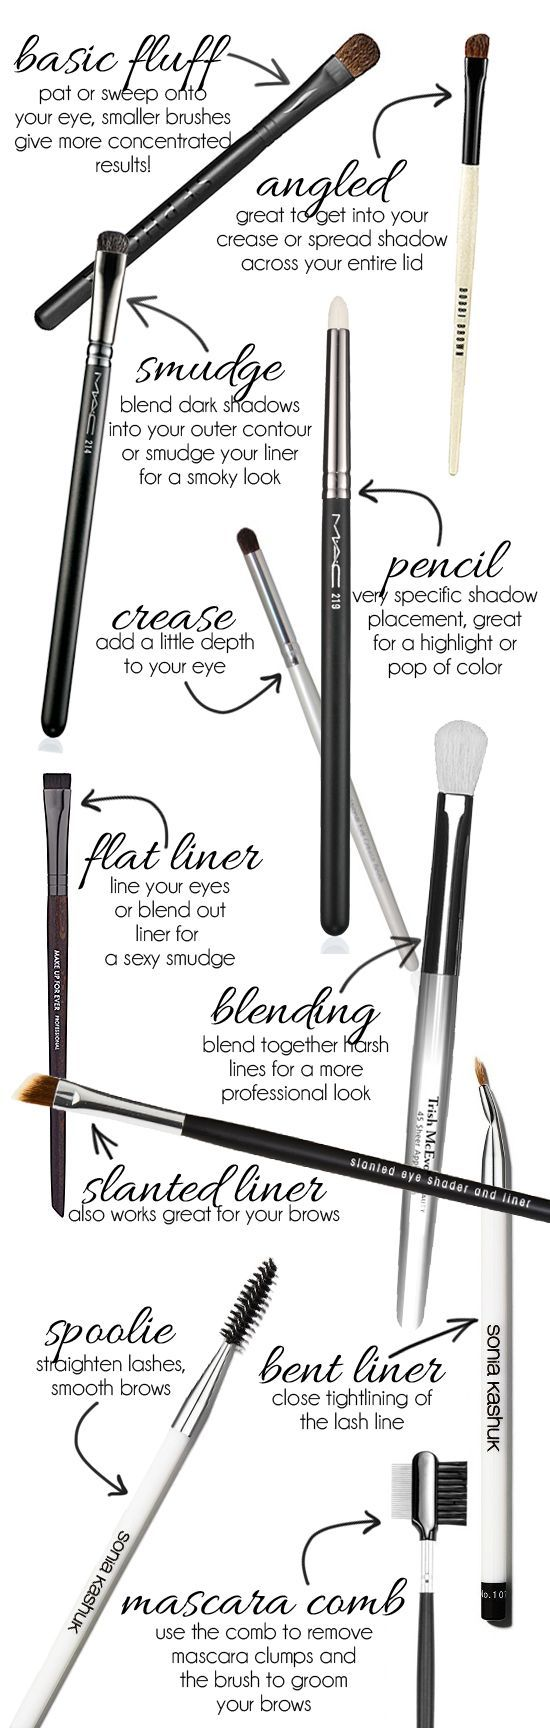 Im so bad with makeup, and this is really helpful!